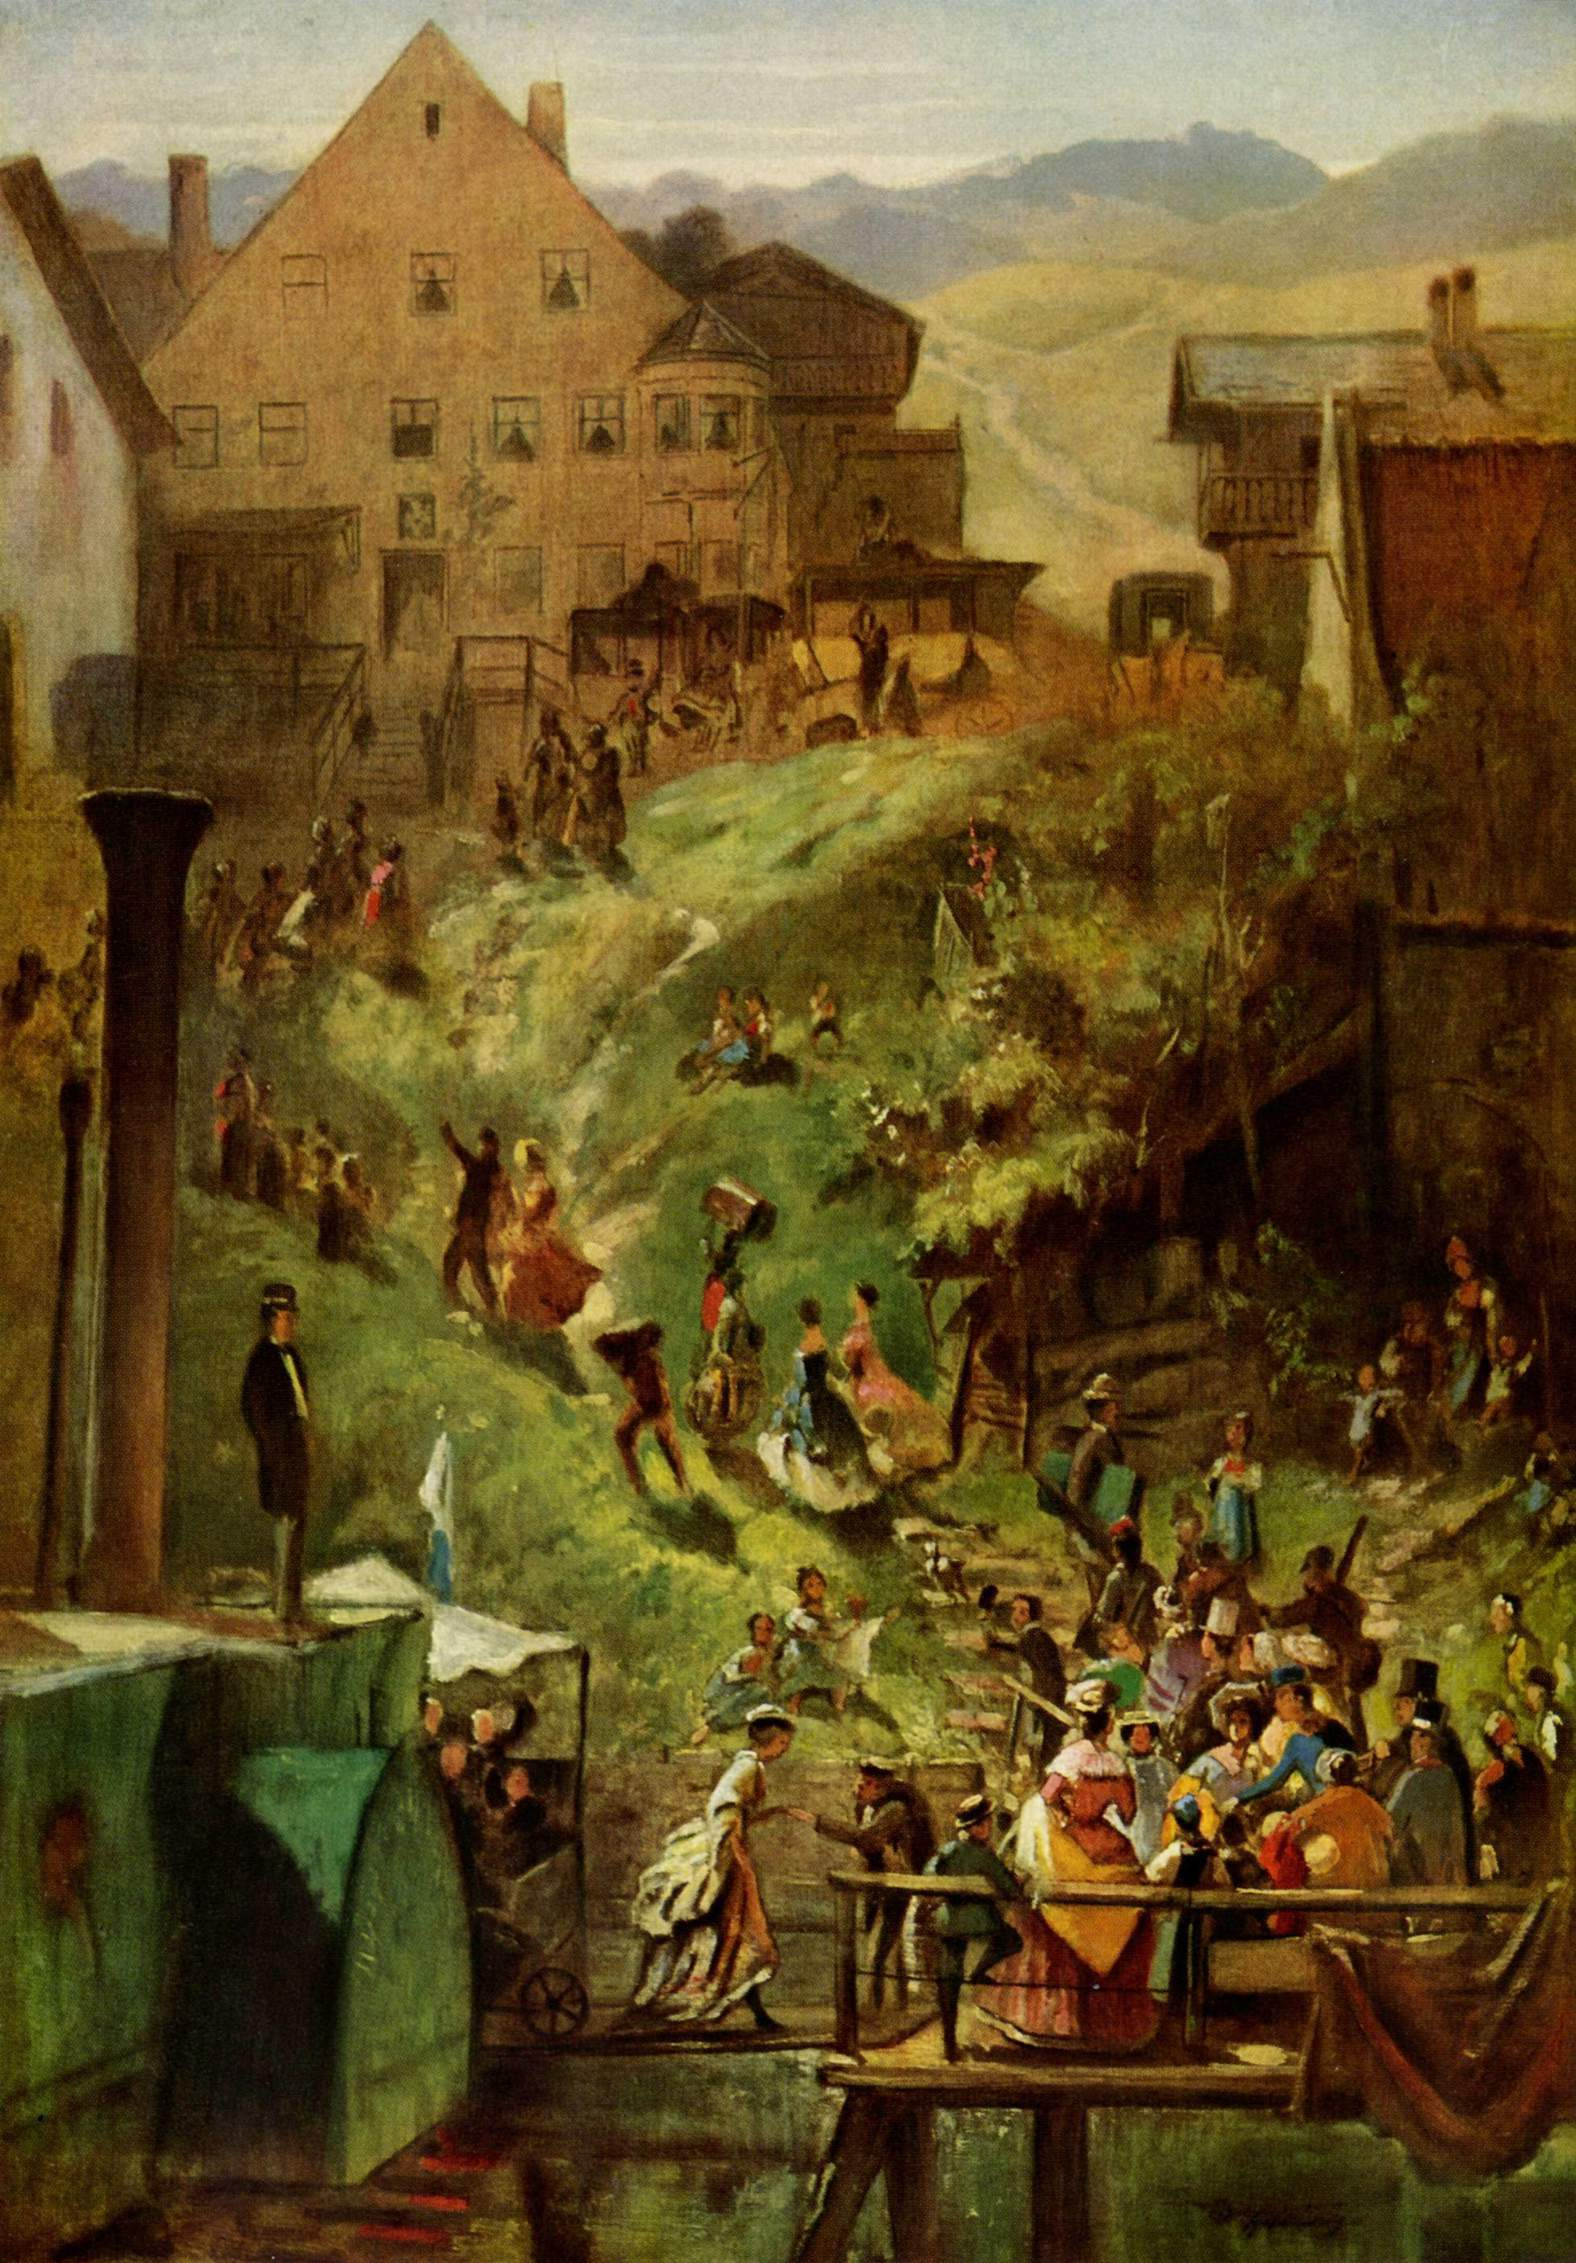 1000 Images About Bi Level Homes On Pinterest: 1000+ Images About Carl Spitzweg On Pinterest